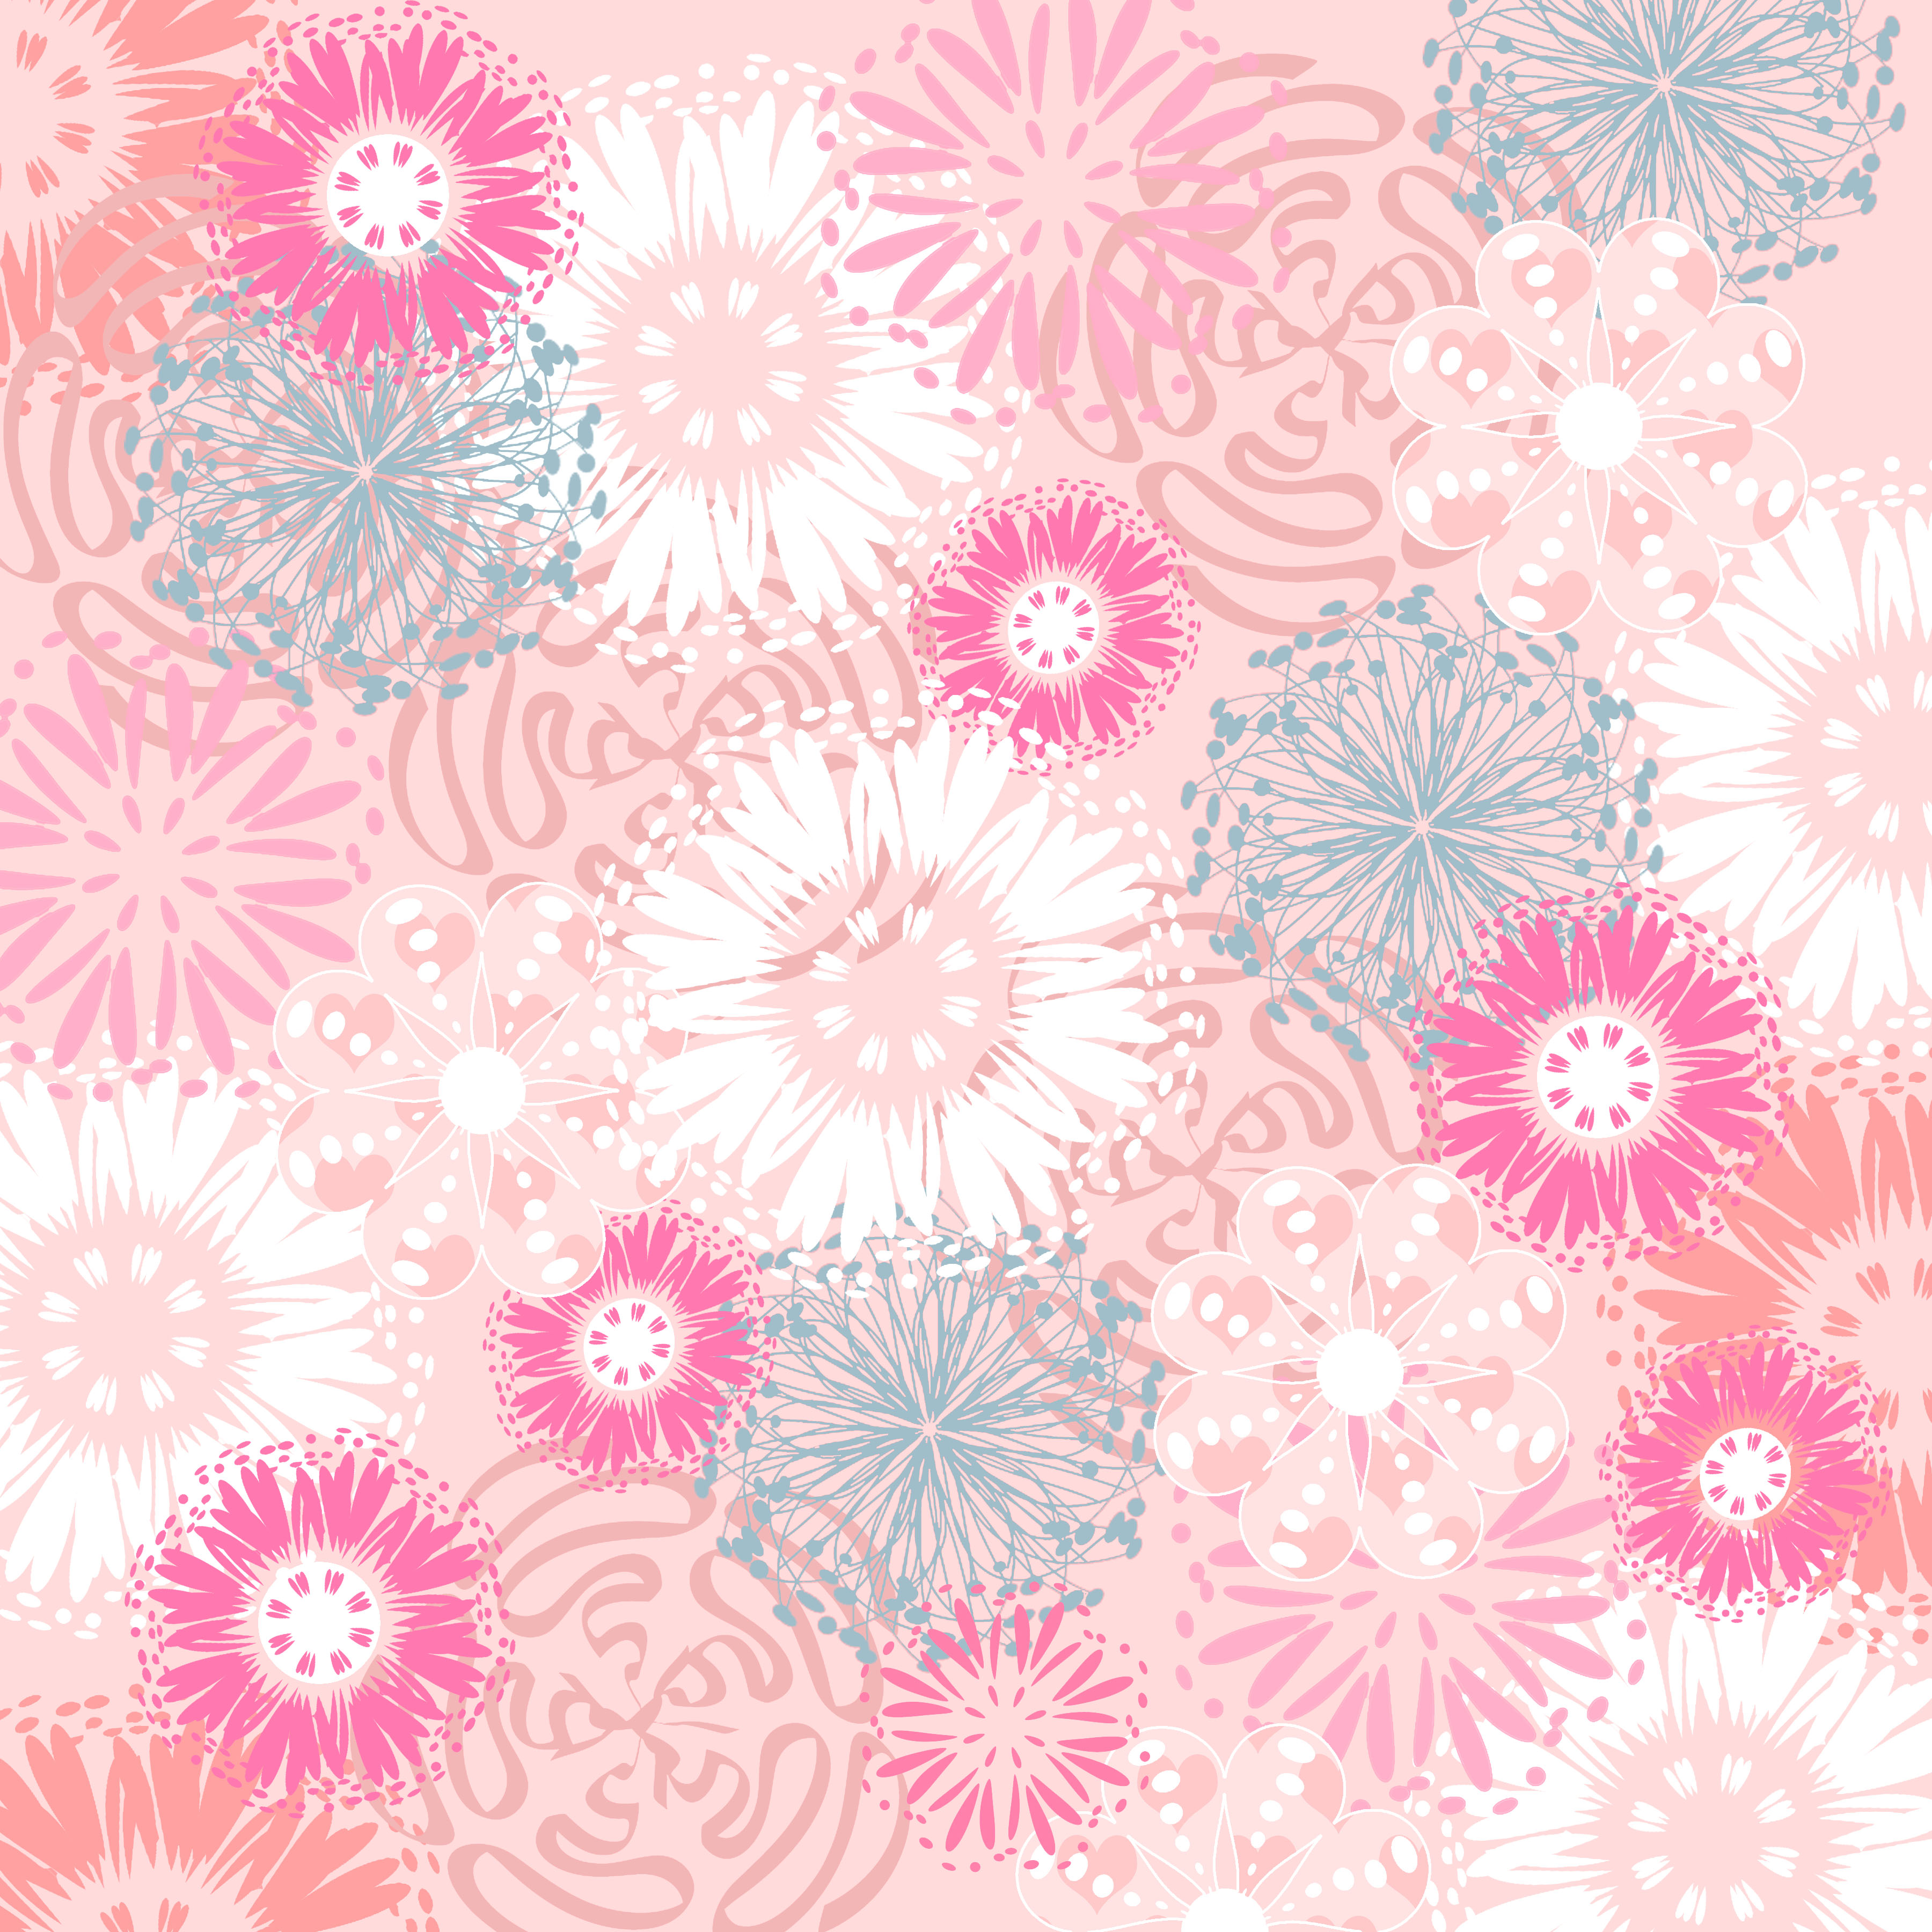 8 Images of Free Printable Scrapbook Paper Backgrounds